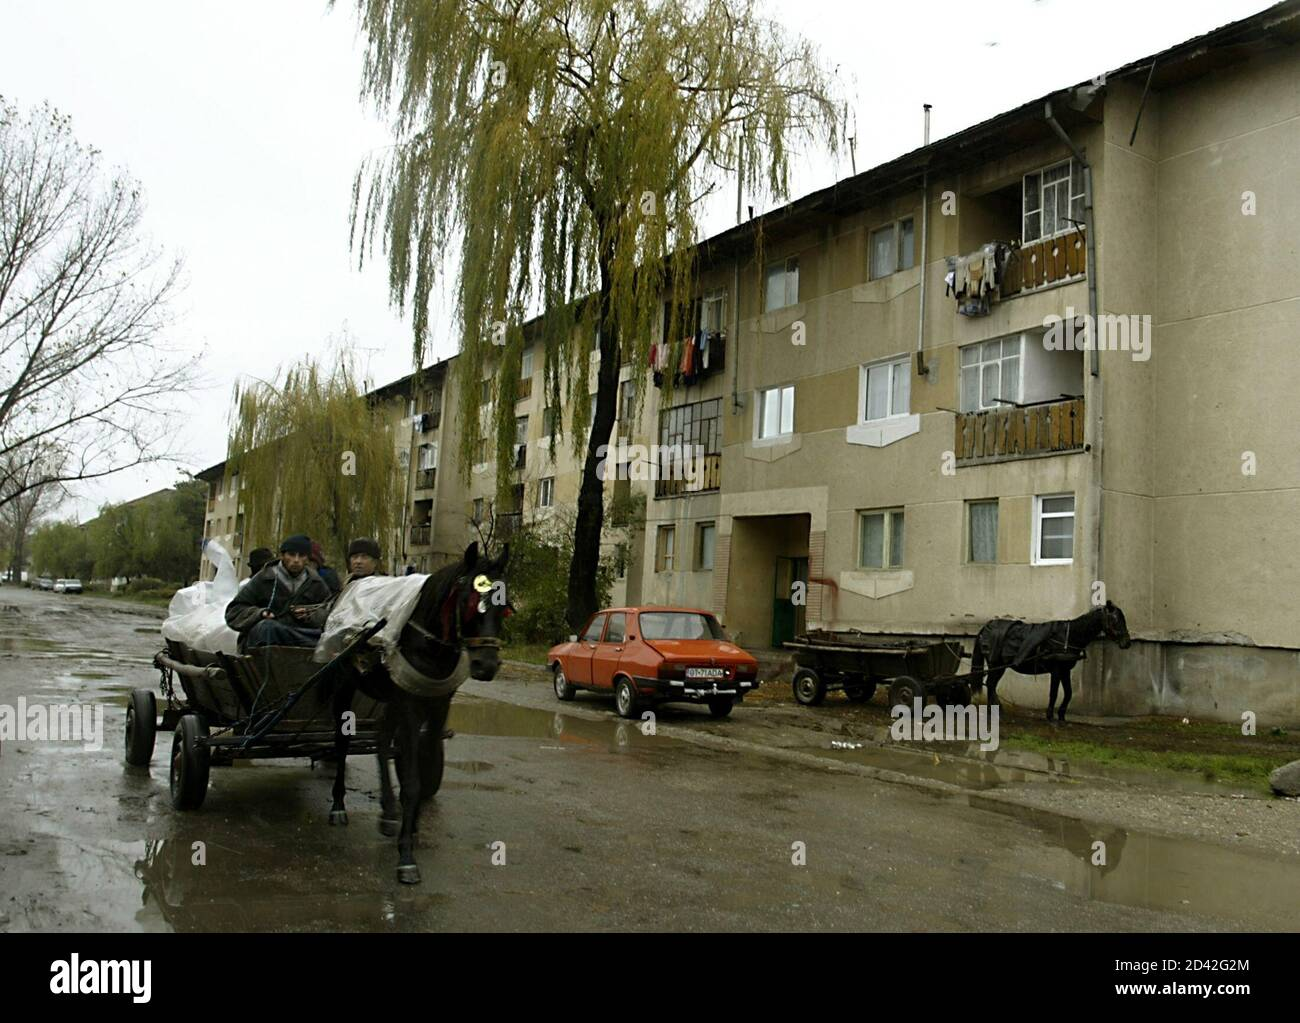 A horse-drawn cart passes by Communist apartment blocks lining a street in the town of Scornicesti (150km west of Bucharest), birthplace of the late Stalinist dictator Nicolae Ceausescu who tried to industrialise his home village, in this November 10, 2004 file picture. The urban-rural divide he tried to forcibly close by razing thousands of villages to the ground is a major factor in Sunday's elections, when impoverished peasants are expected to vote for the ruling socialists while urbanites for the more pro-business centrist opposition. TO GO WITH FEATURE BC-ROMANIA-ELECTIONS-DIVIDE. File pi Stock Photo